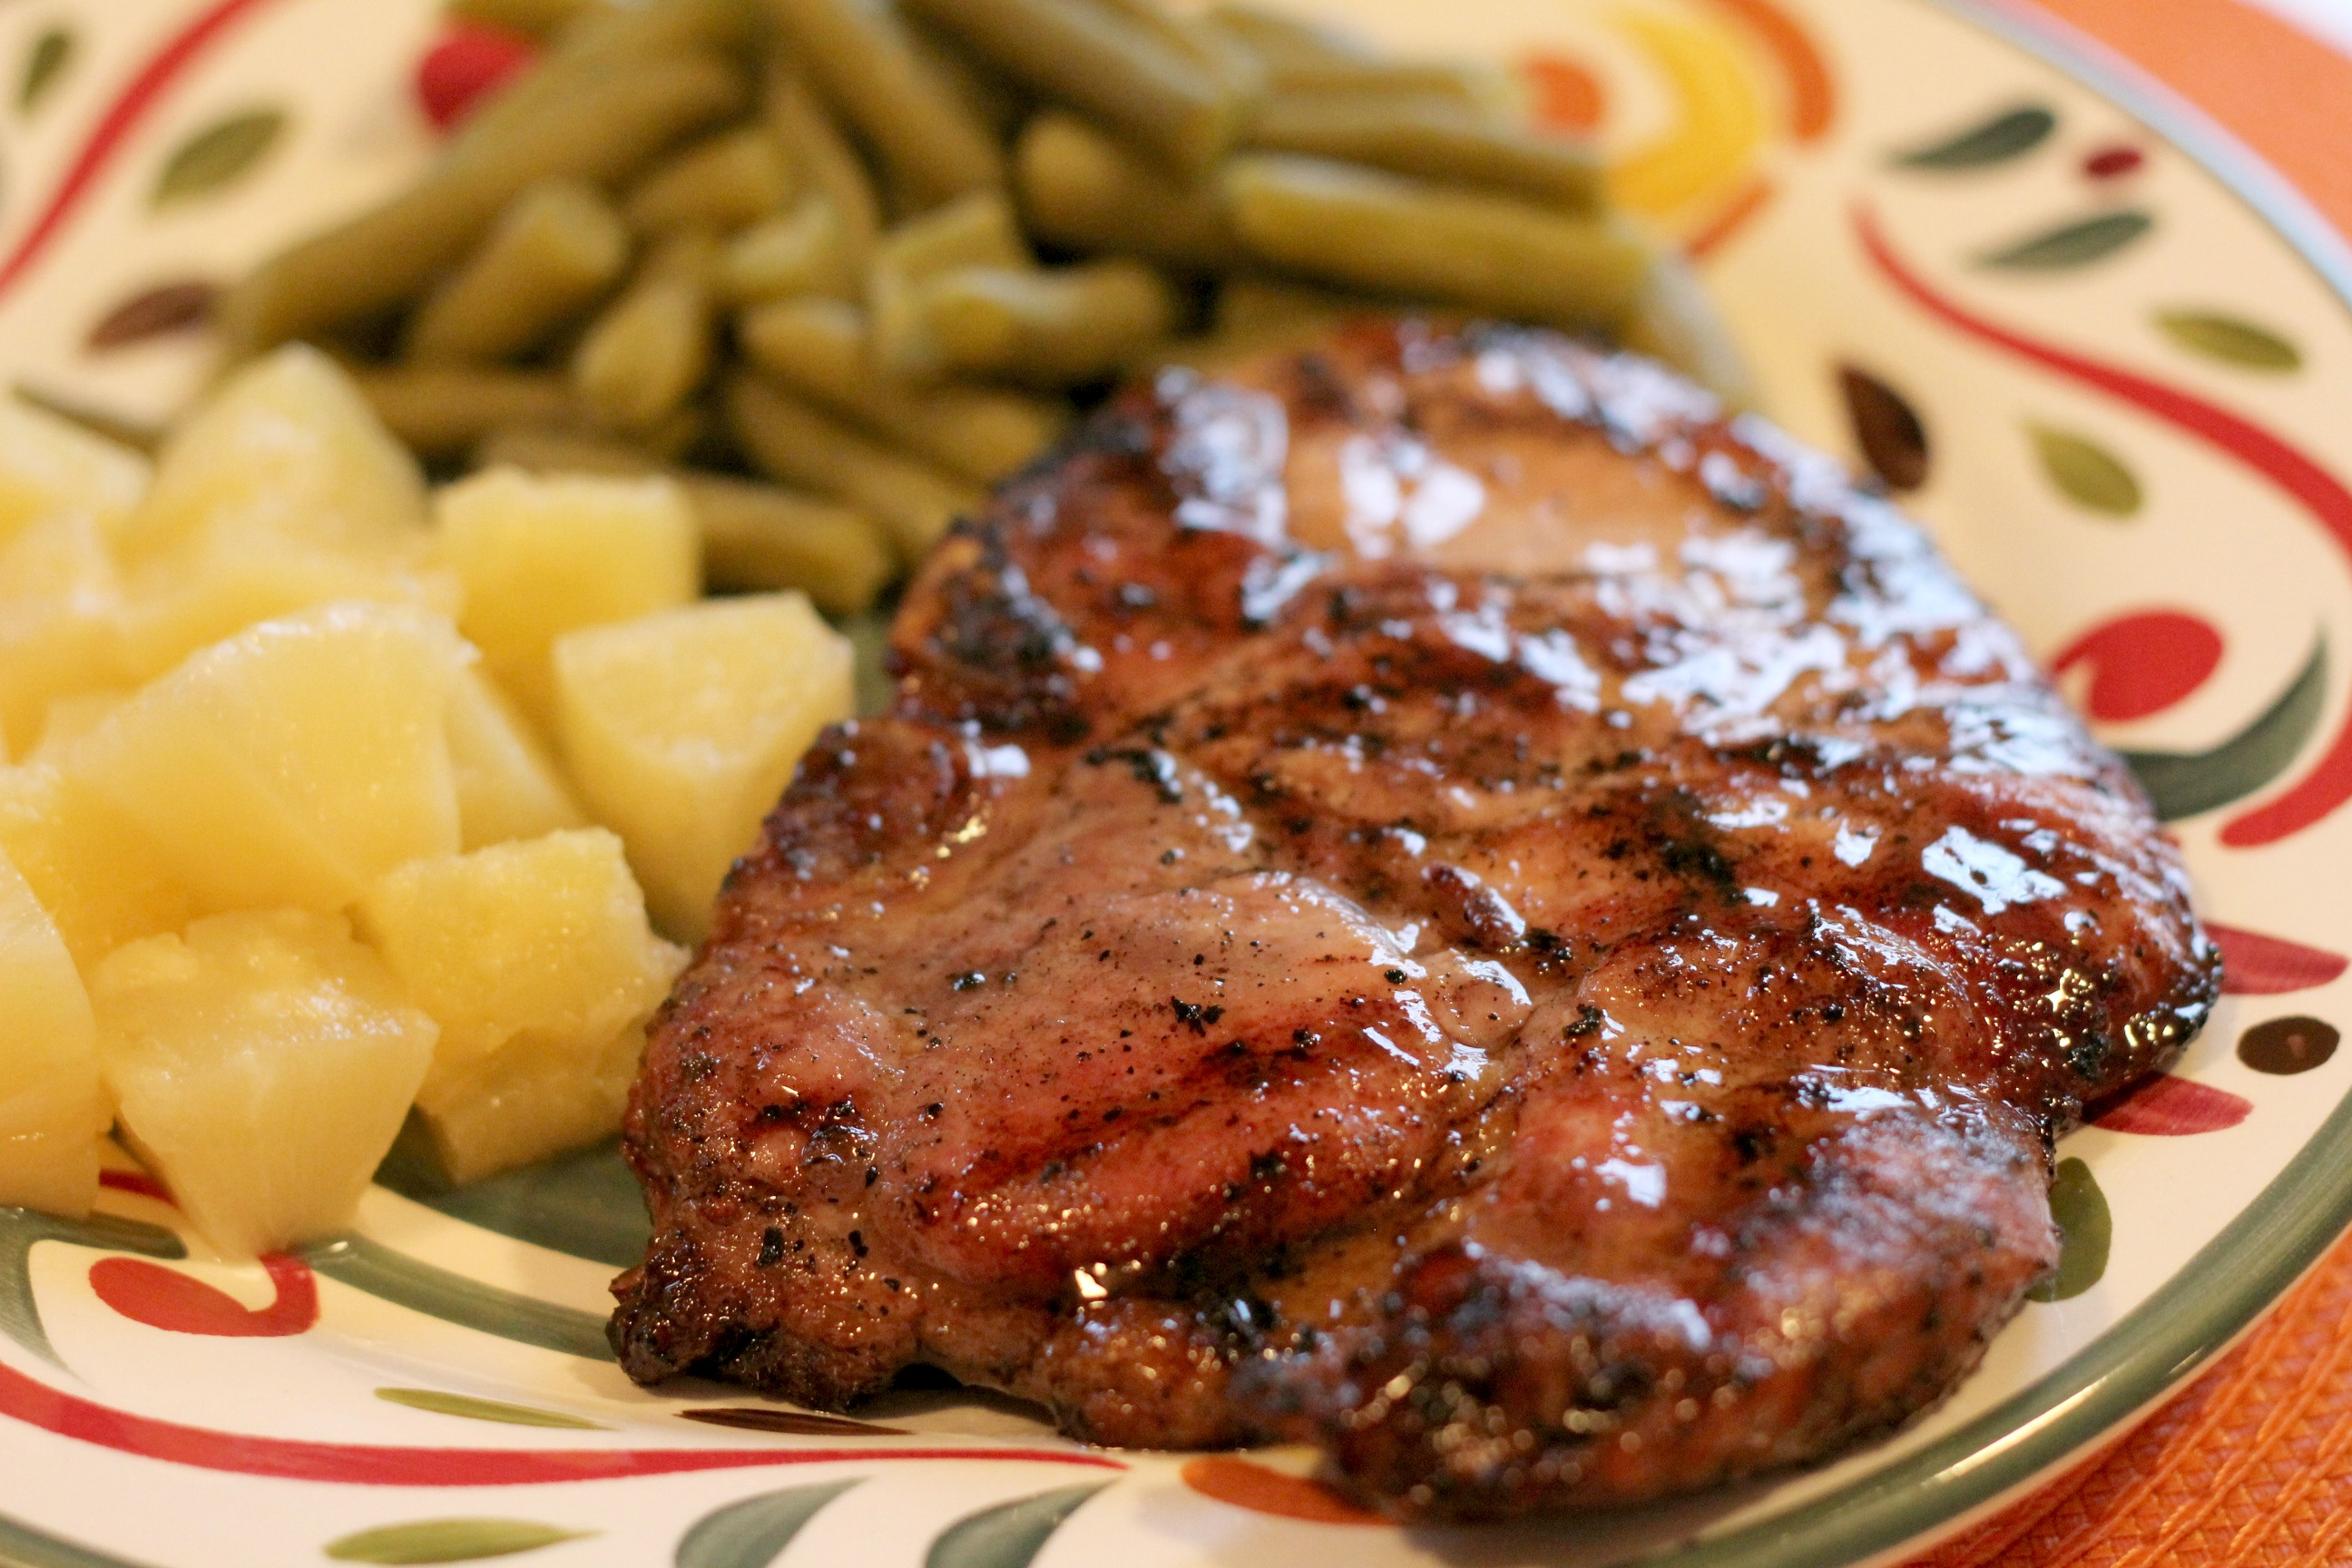 pork pork tenderloin recipe grilled pork chop with grilled pork chops ...